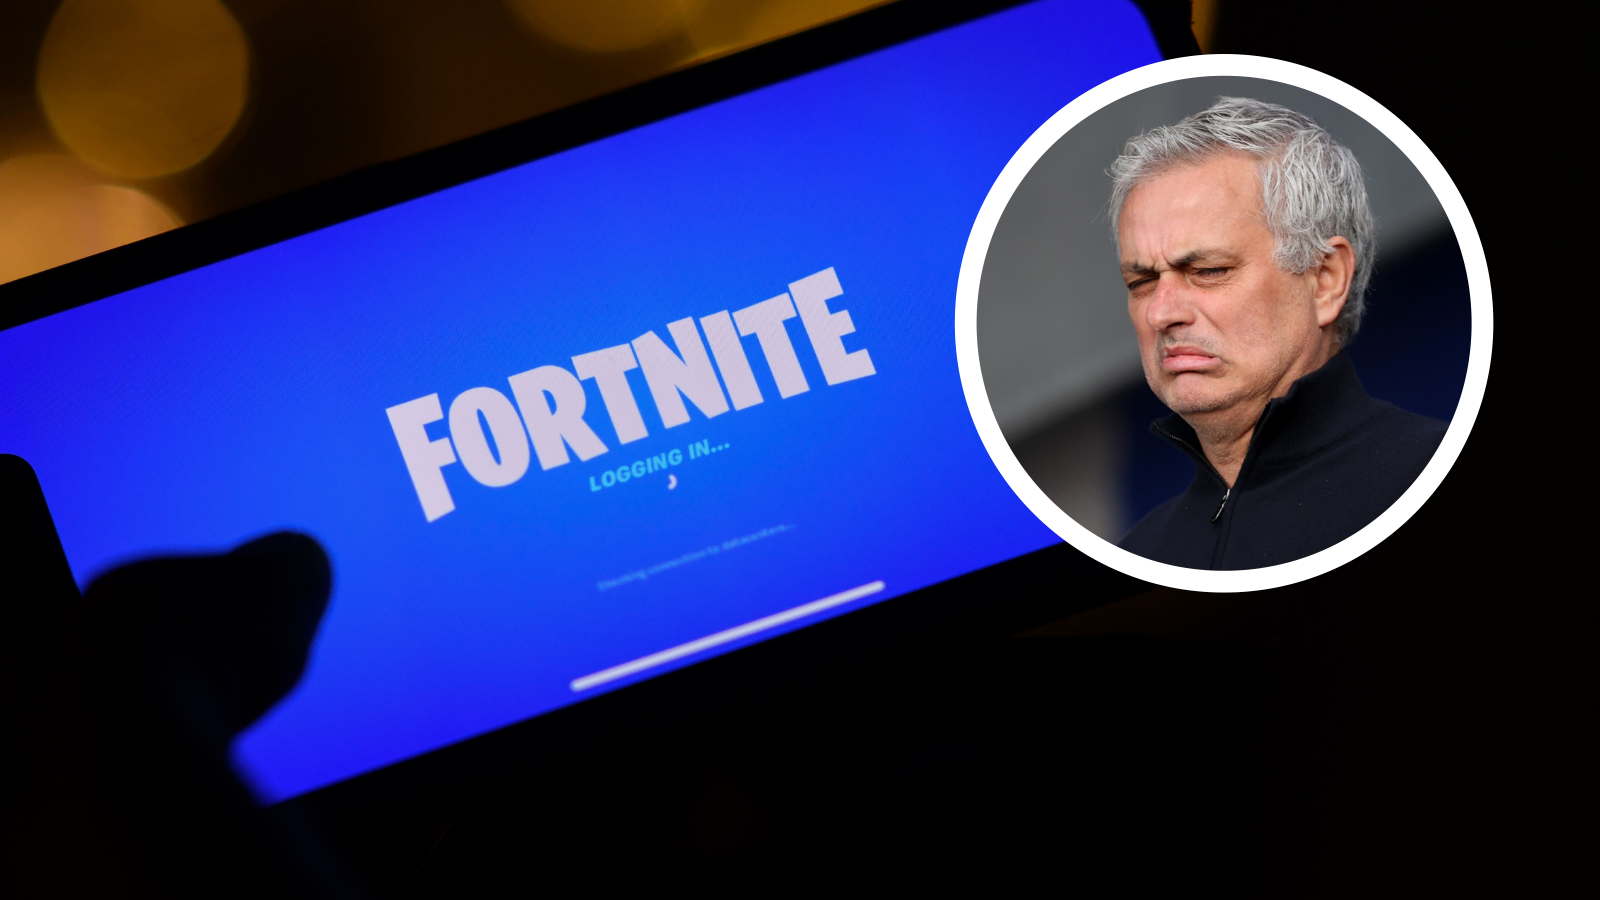 'Players stay up all night playing that sh*t' -Mourinho labels Fortnite a 'nightmare'